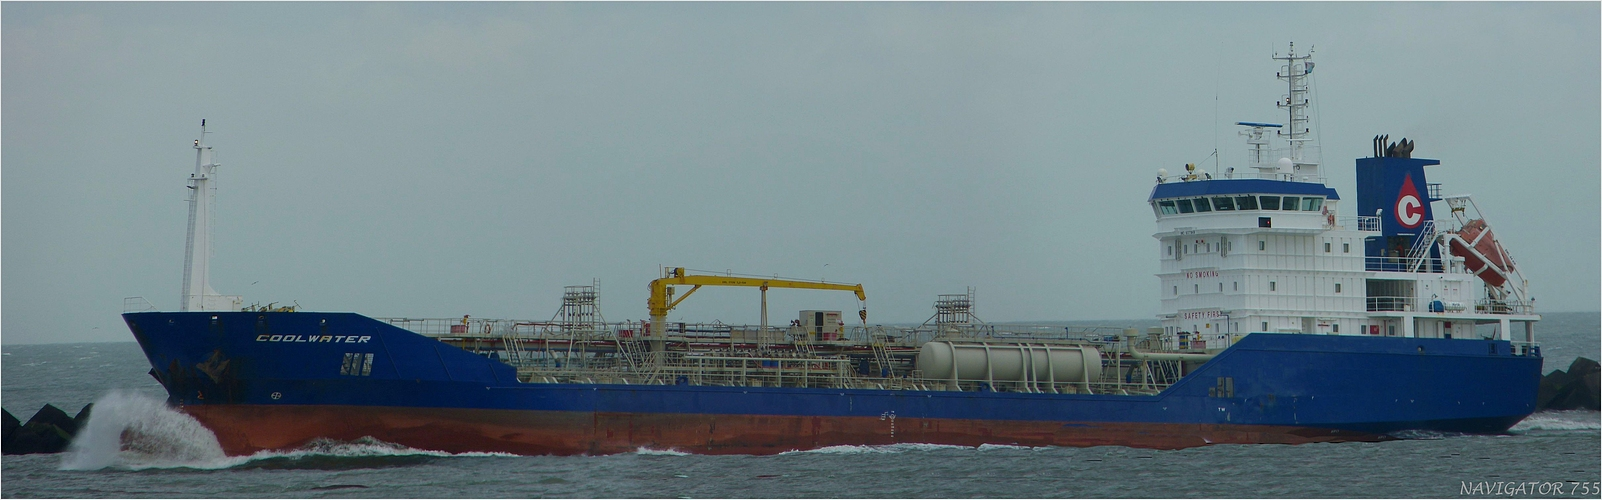 COOLWATER /Oil/chemical Tanker / Maasmond / Rotterdam